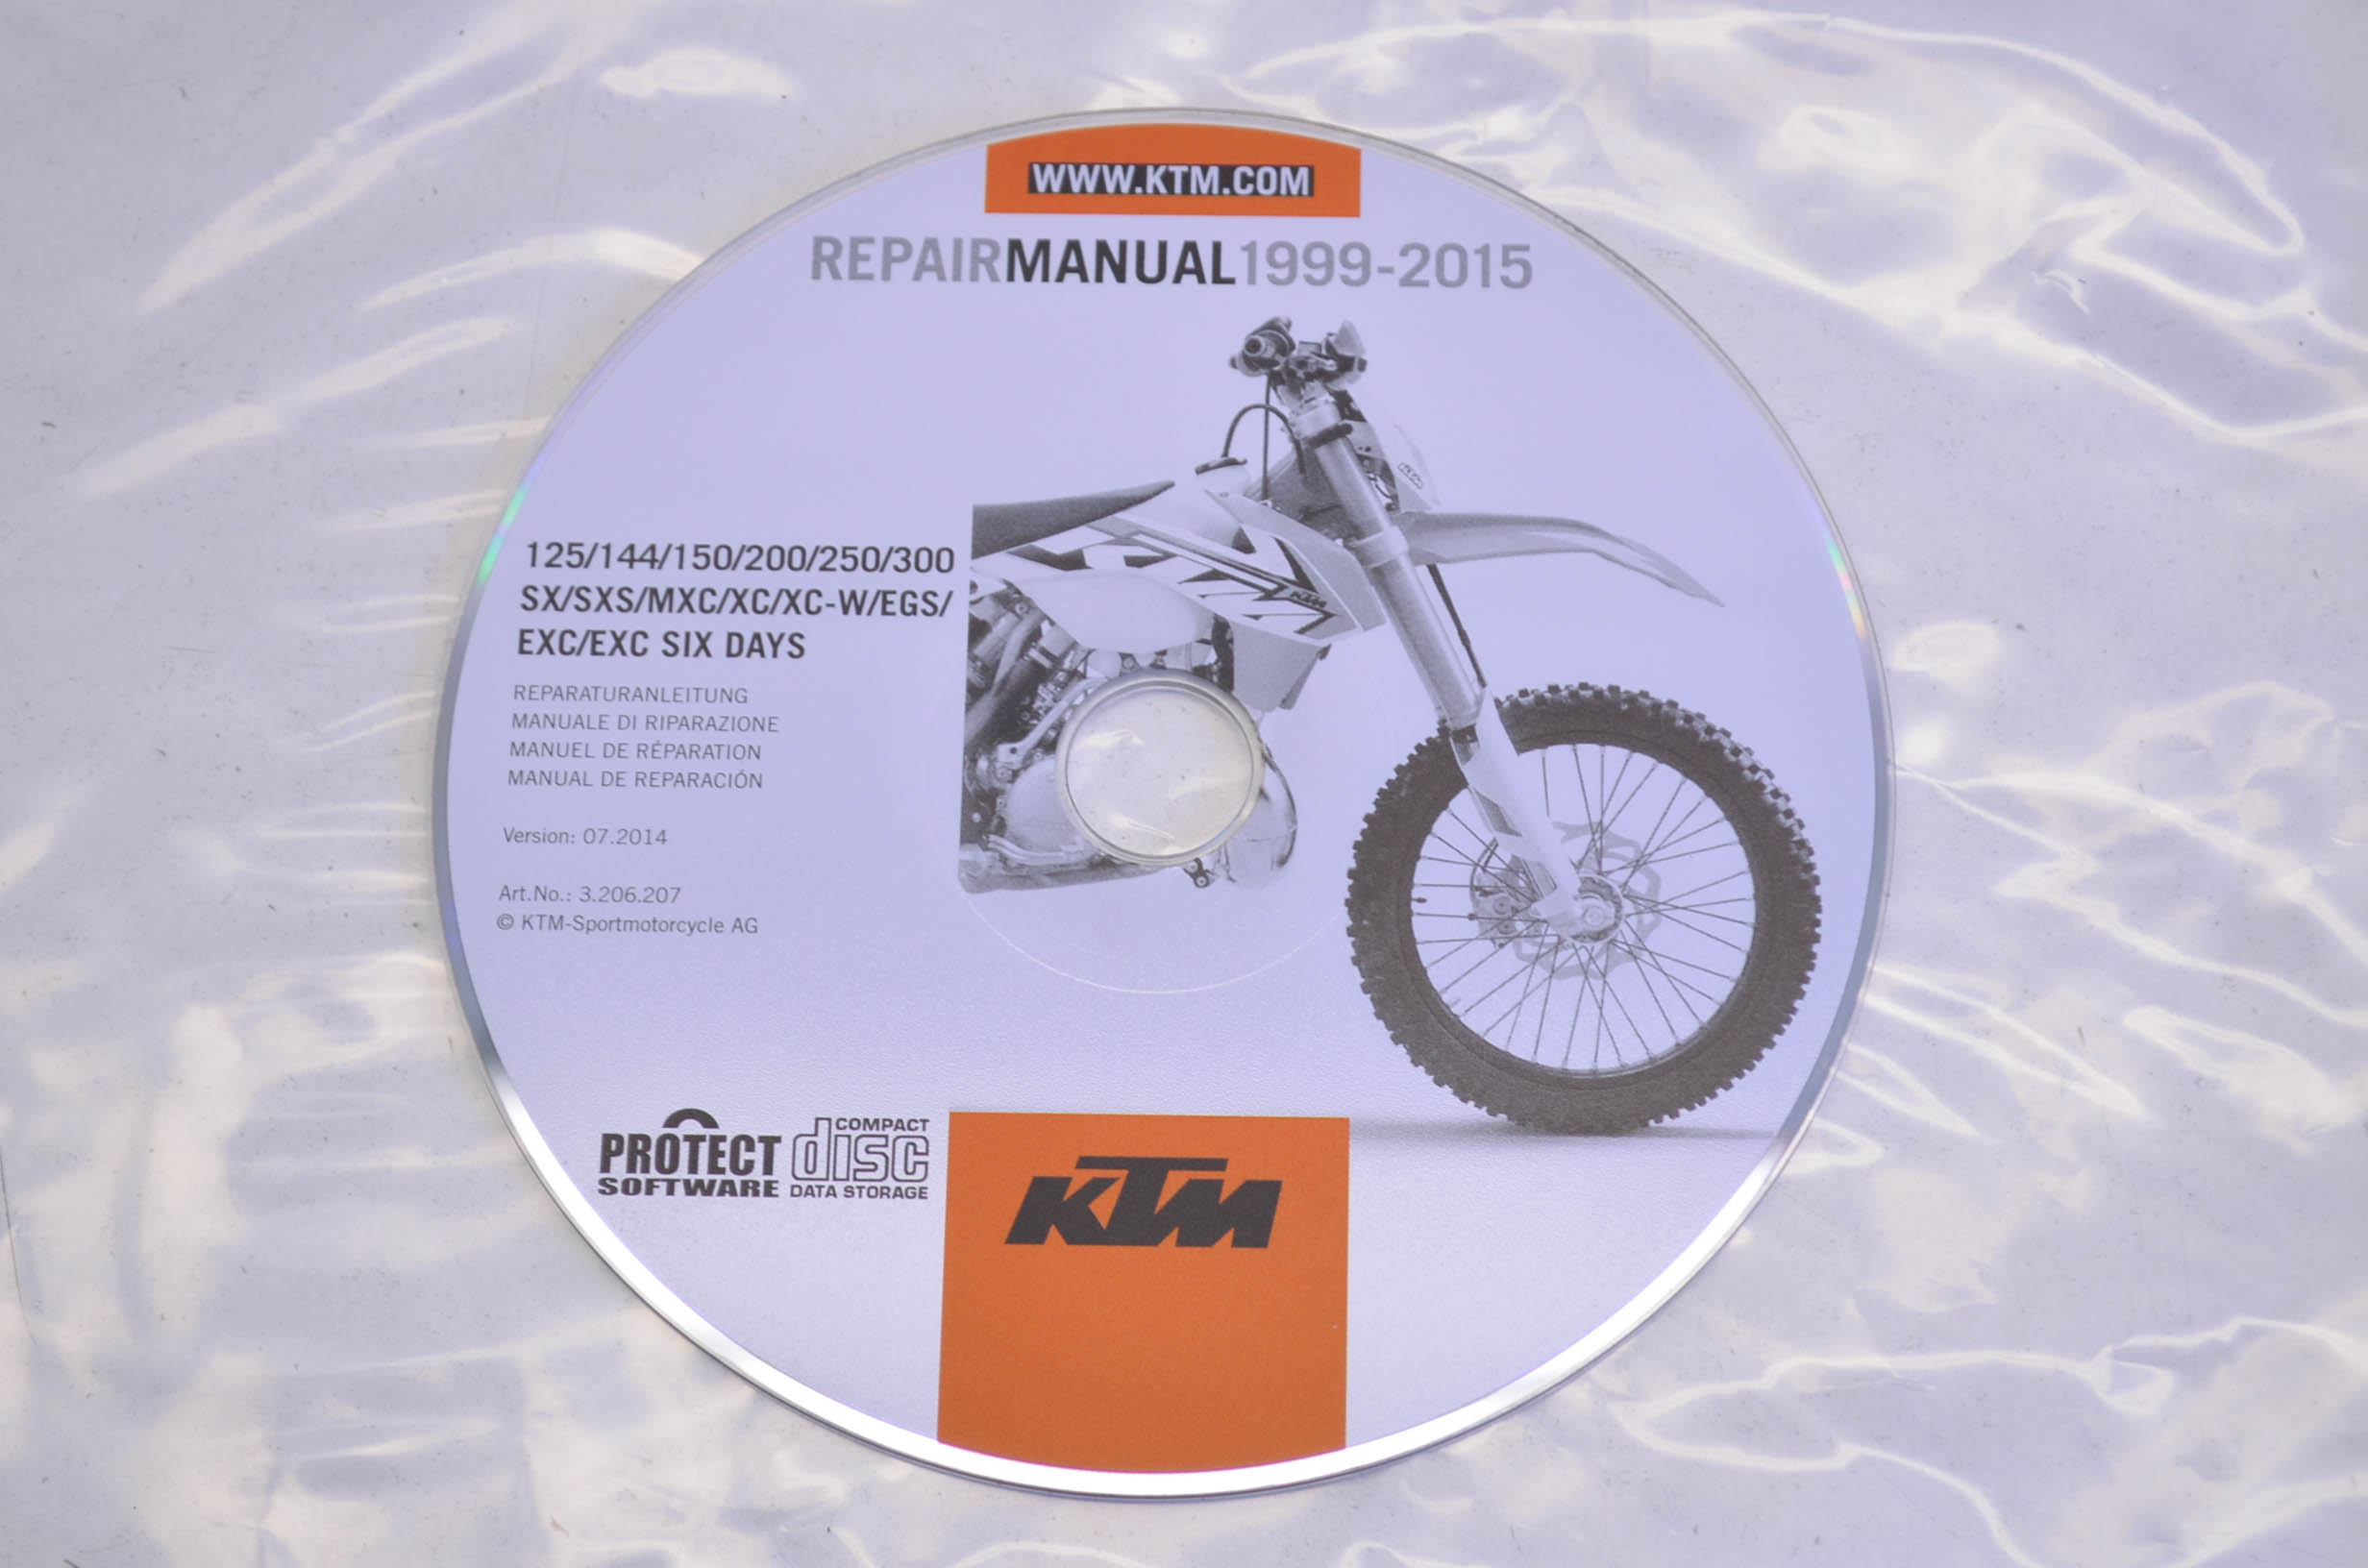 KTM 3206207 1999-2015 125-300 SX/SXS/MXC/XC/W/EGS/EXC/EXC SIX DAYS Repair  Manual CD Disc QTY 1 - Walmart.com